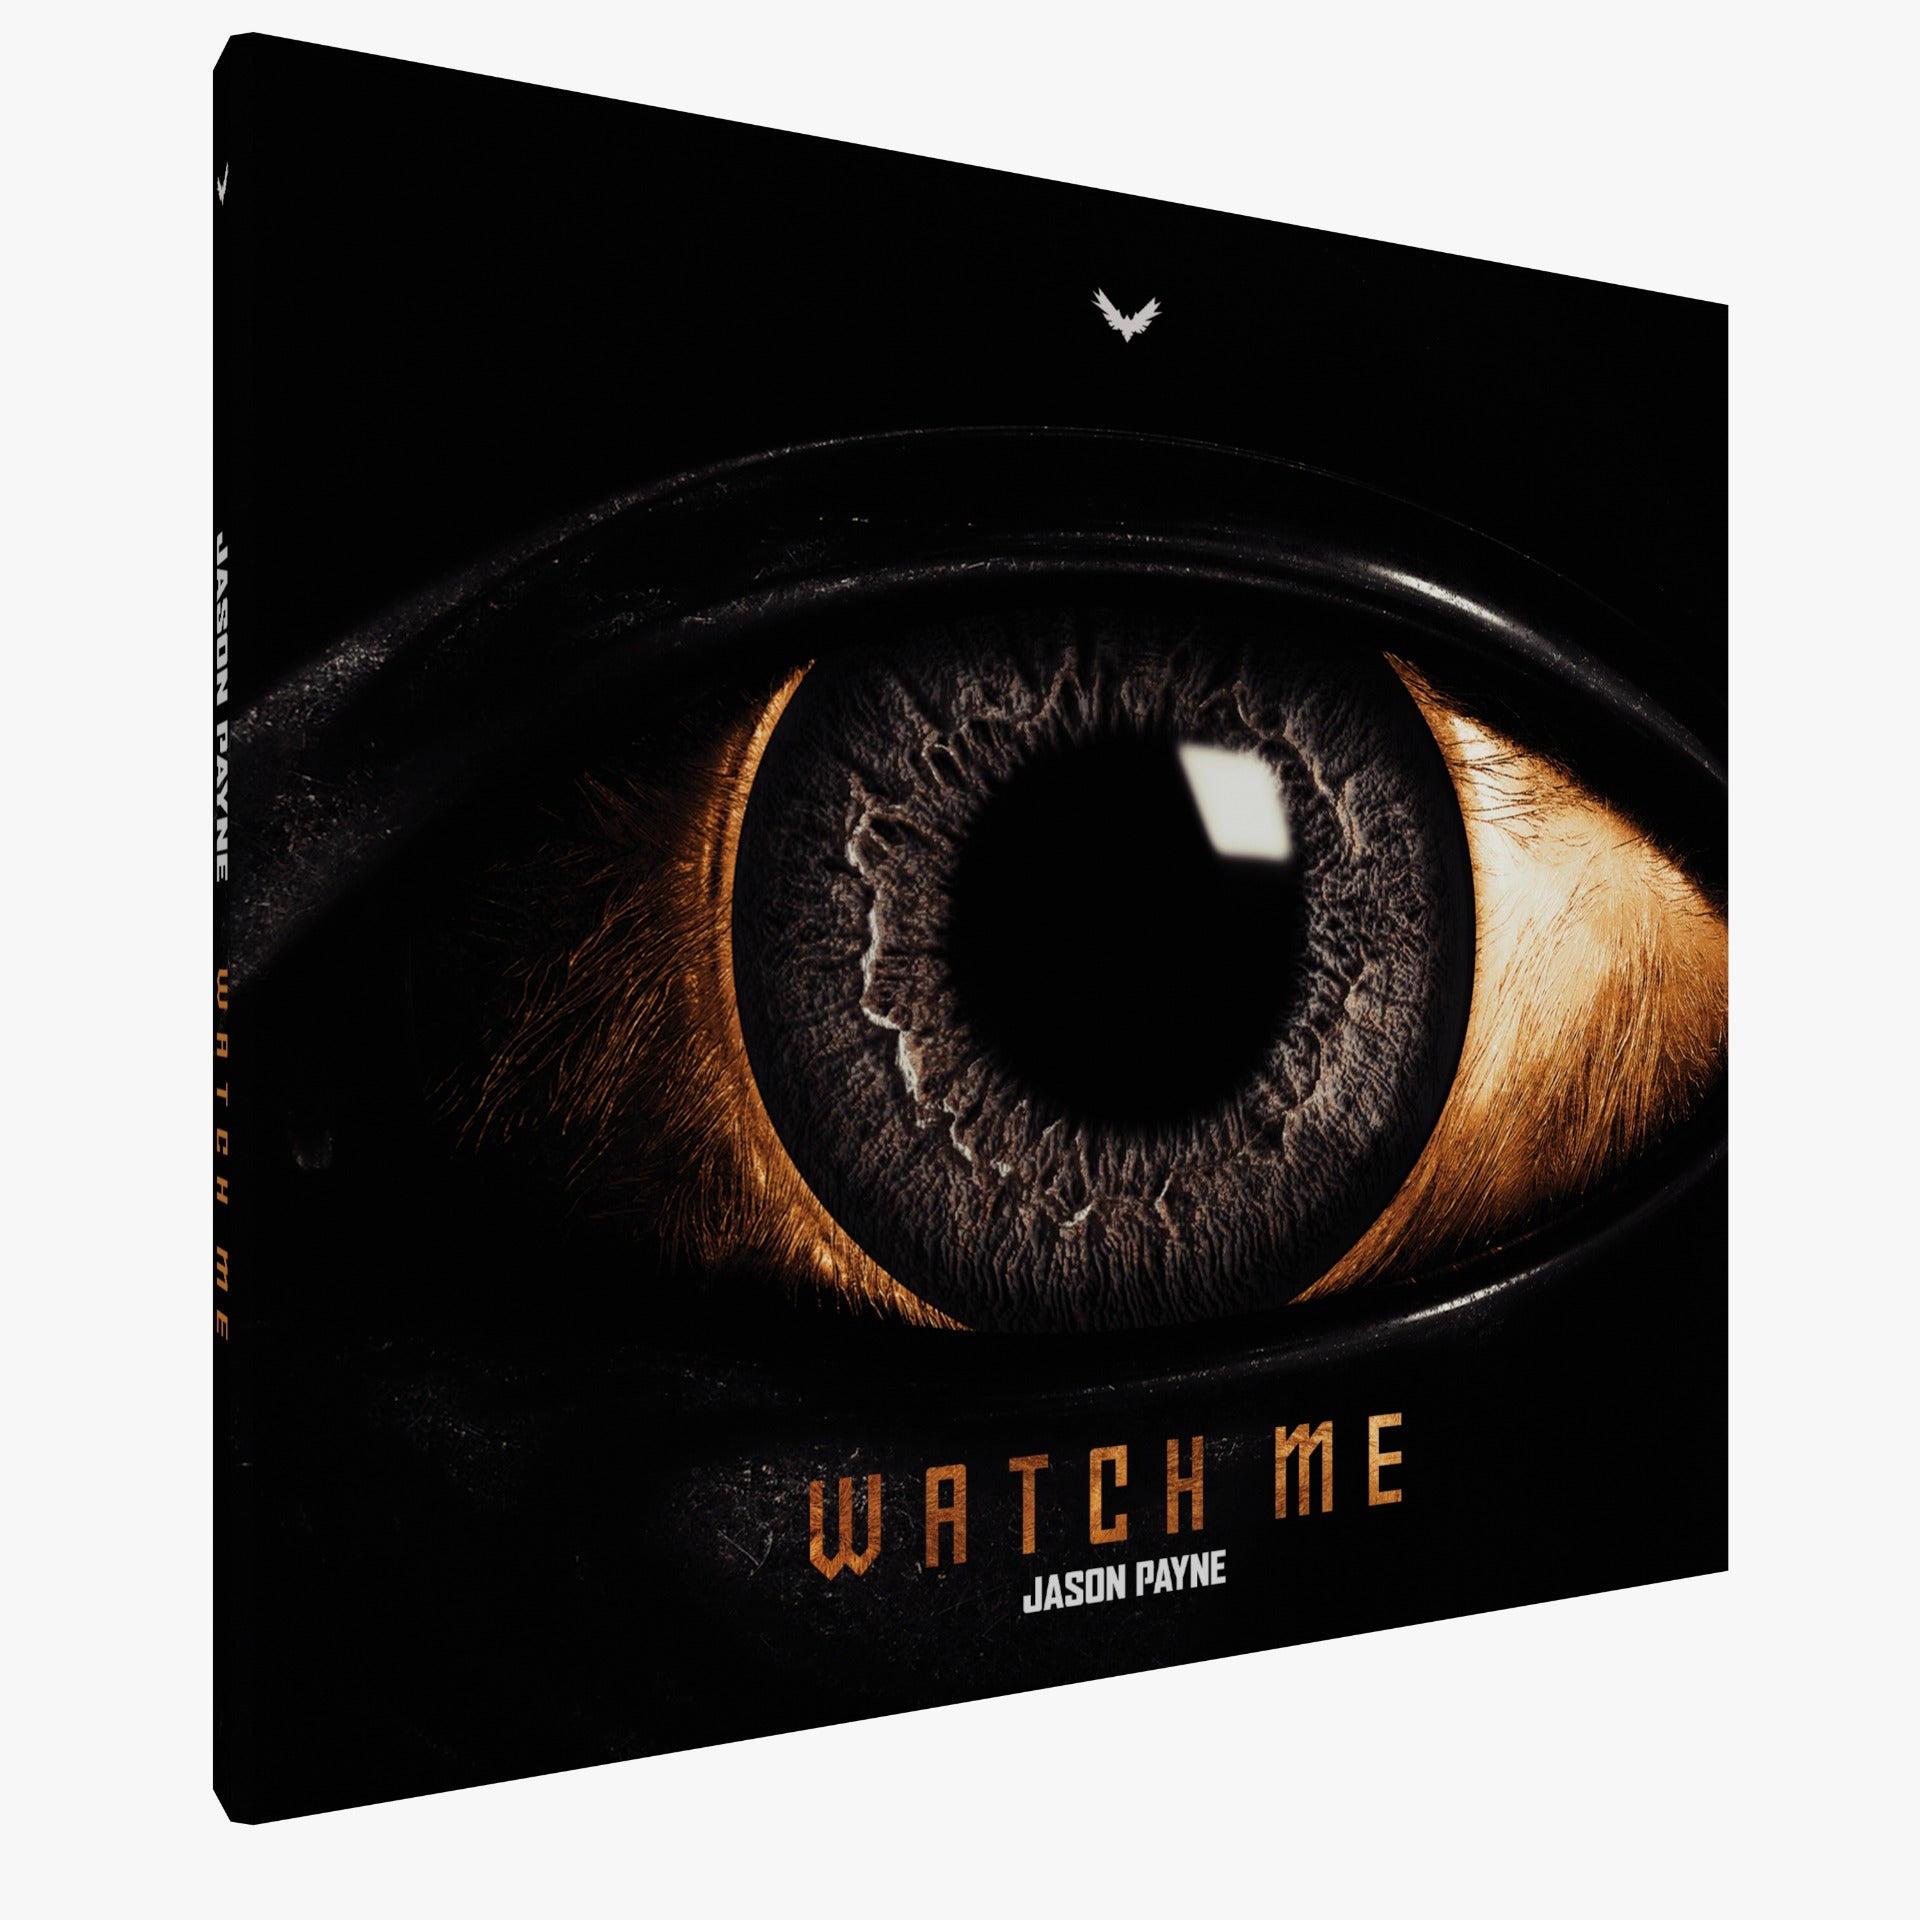 Watch Me CD | Jason Payne